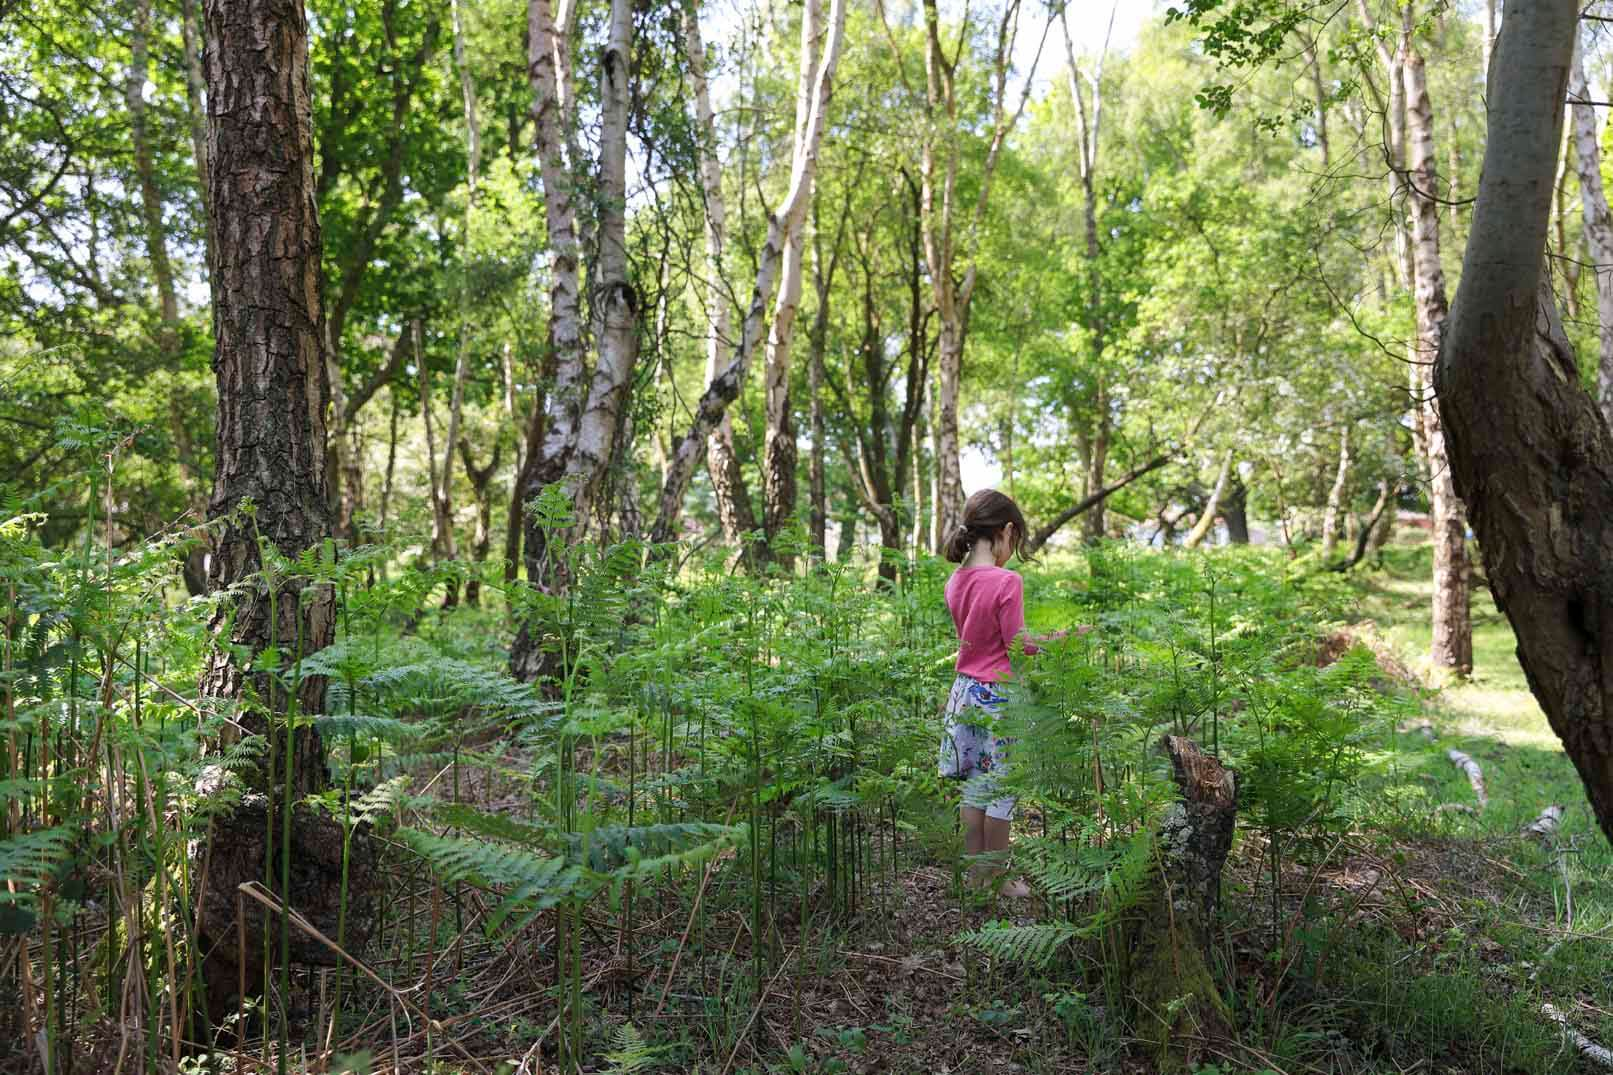 Go hunting bugs in the forest